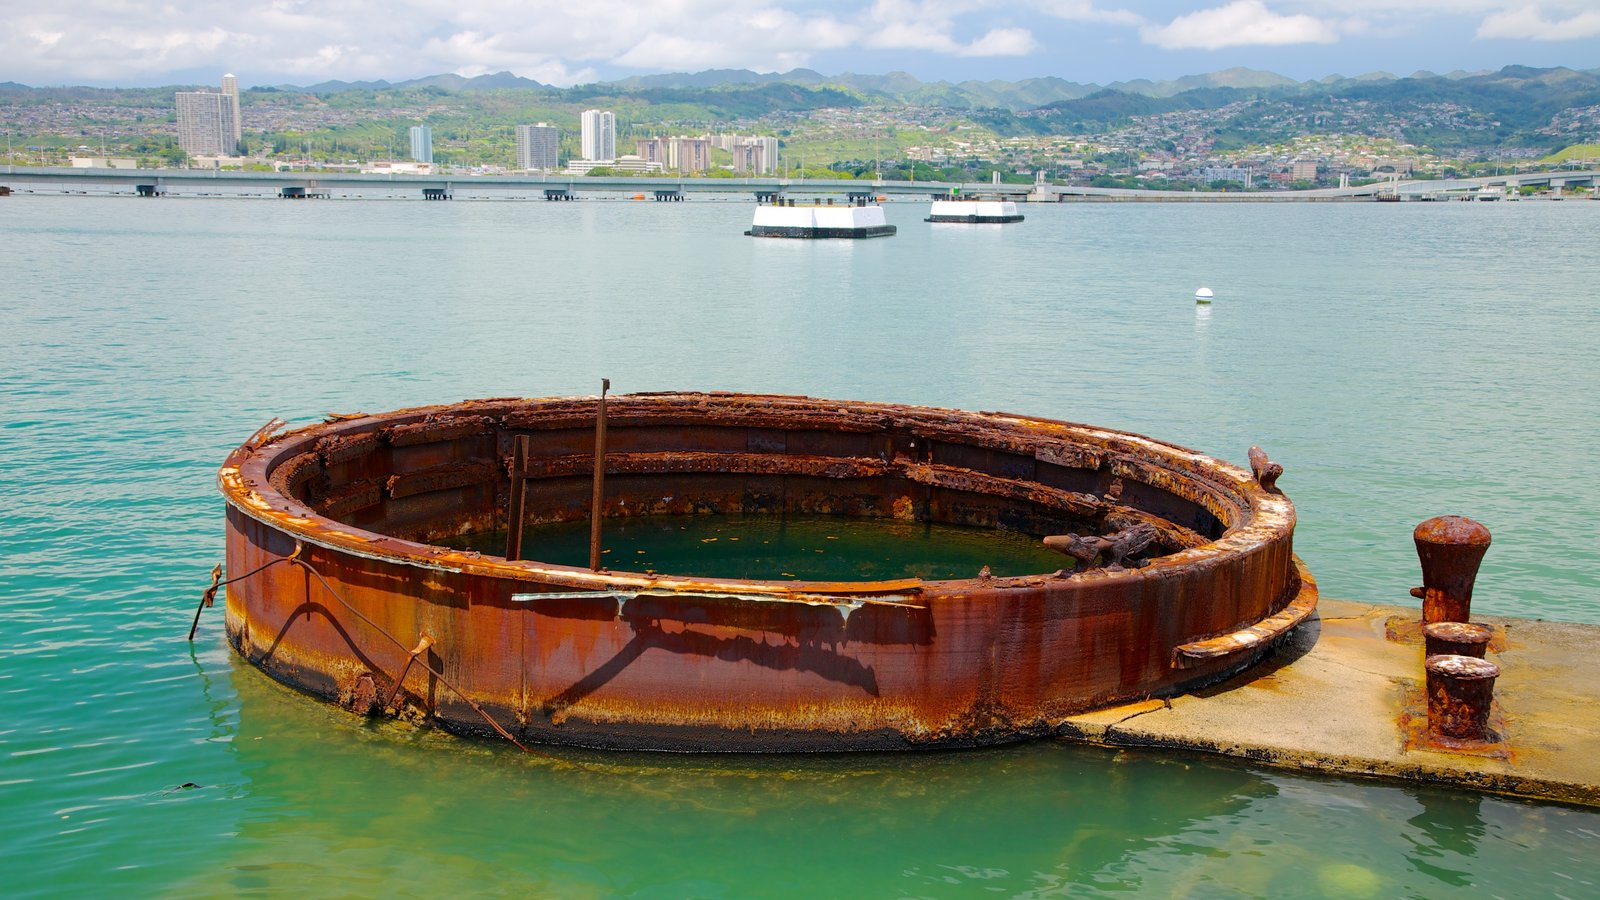 USS Arizona Memorial which includes a memorial